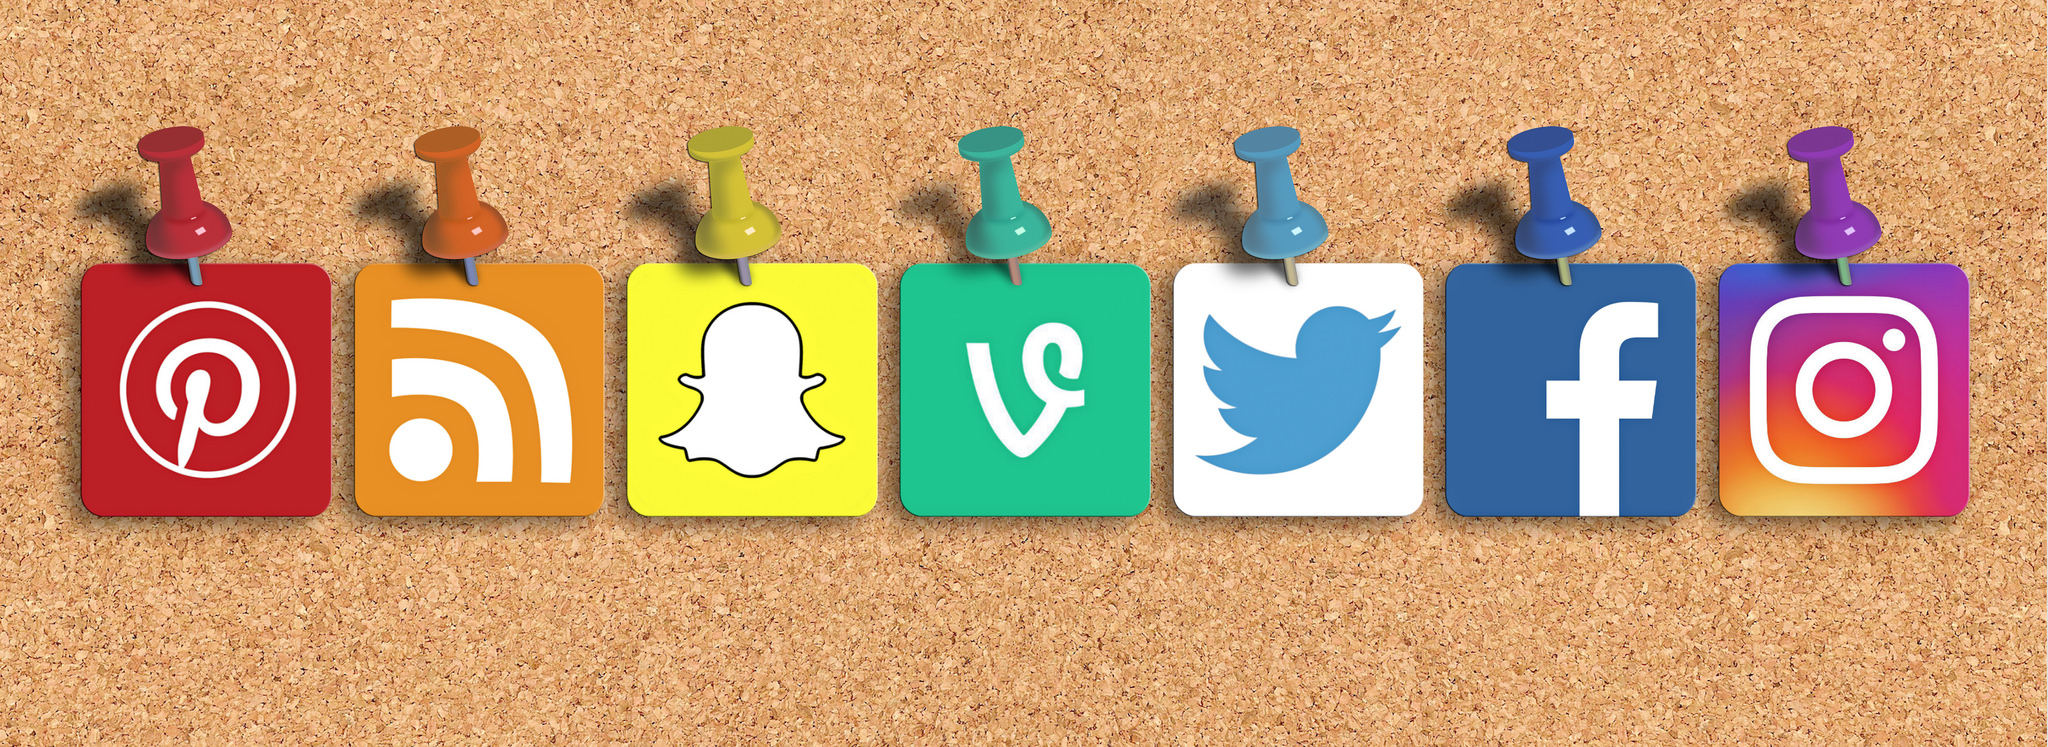 Social Media Mixed Icons - Banner